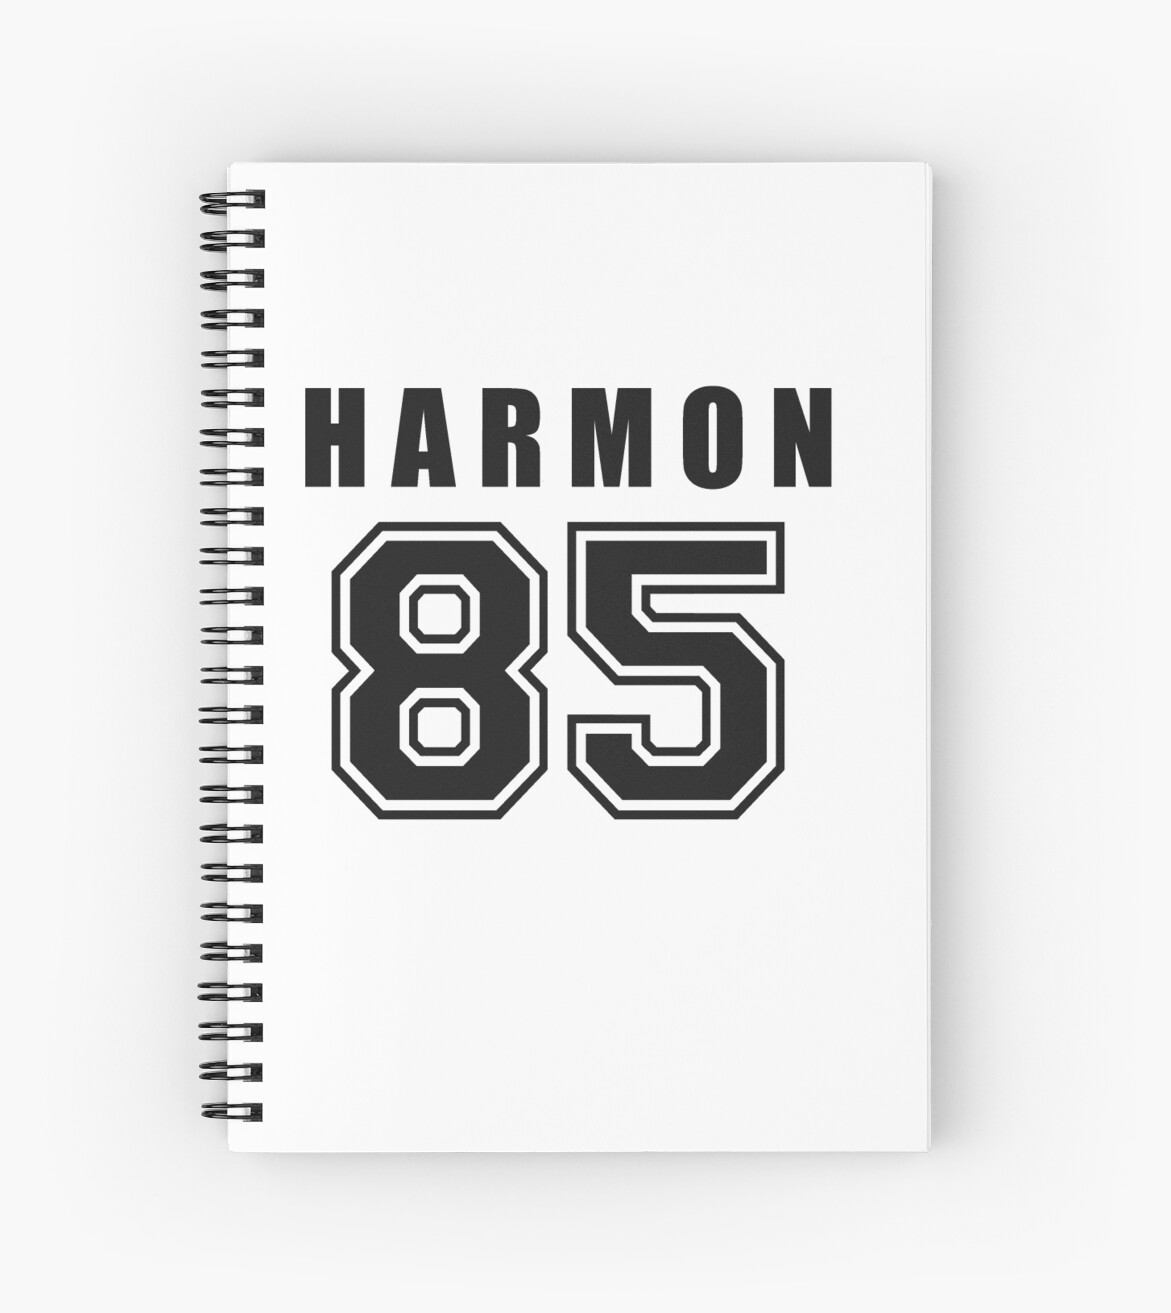 HARMON 85 (2) by spaceheadalycia